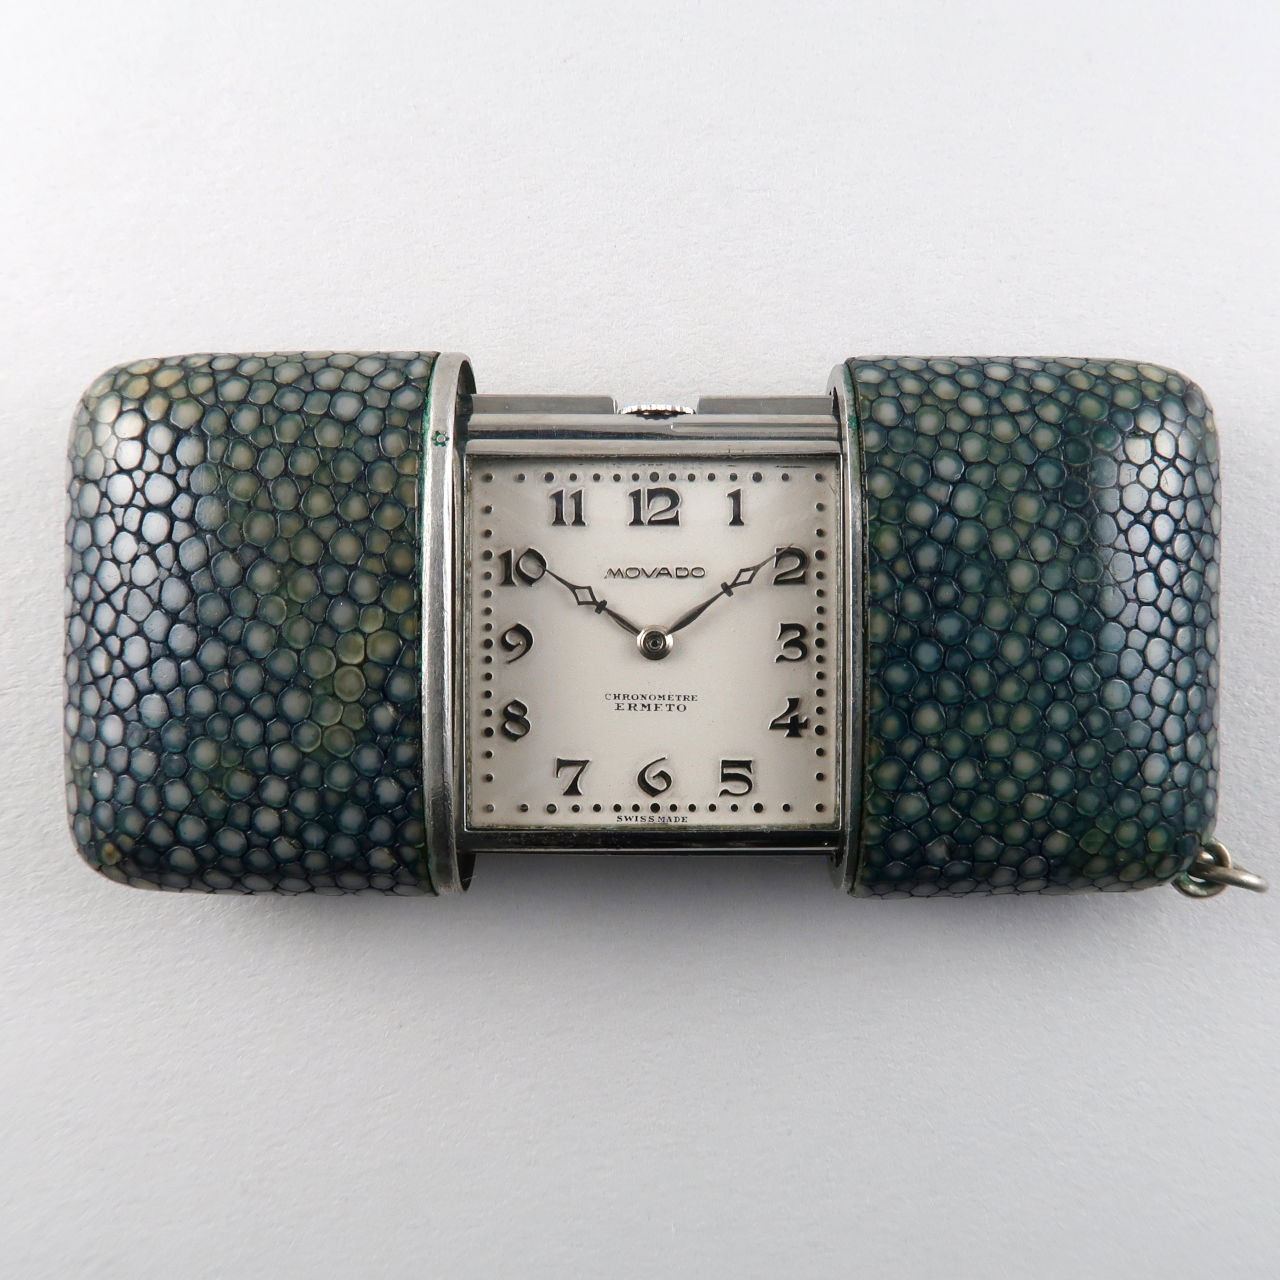 Movado Ermeto Chronomètre circa 1930 | blue shagreen & steel vintage purse watch